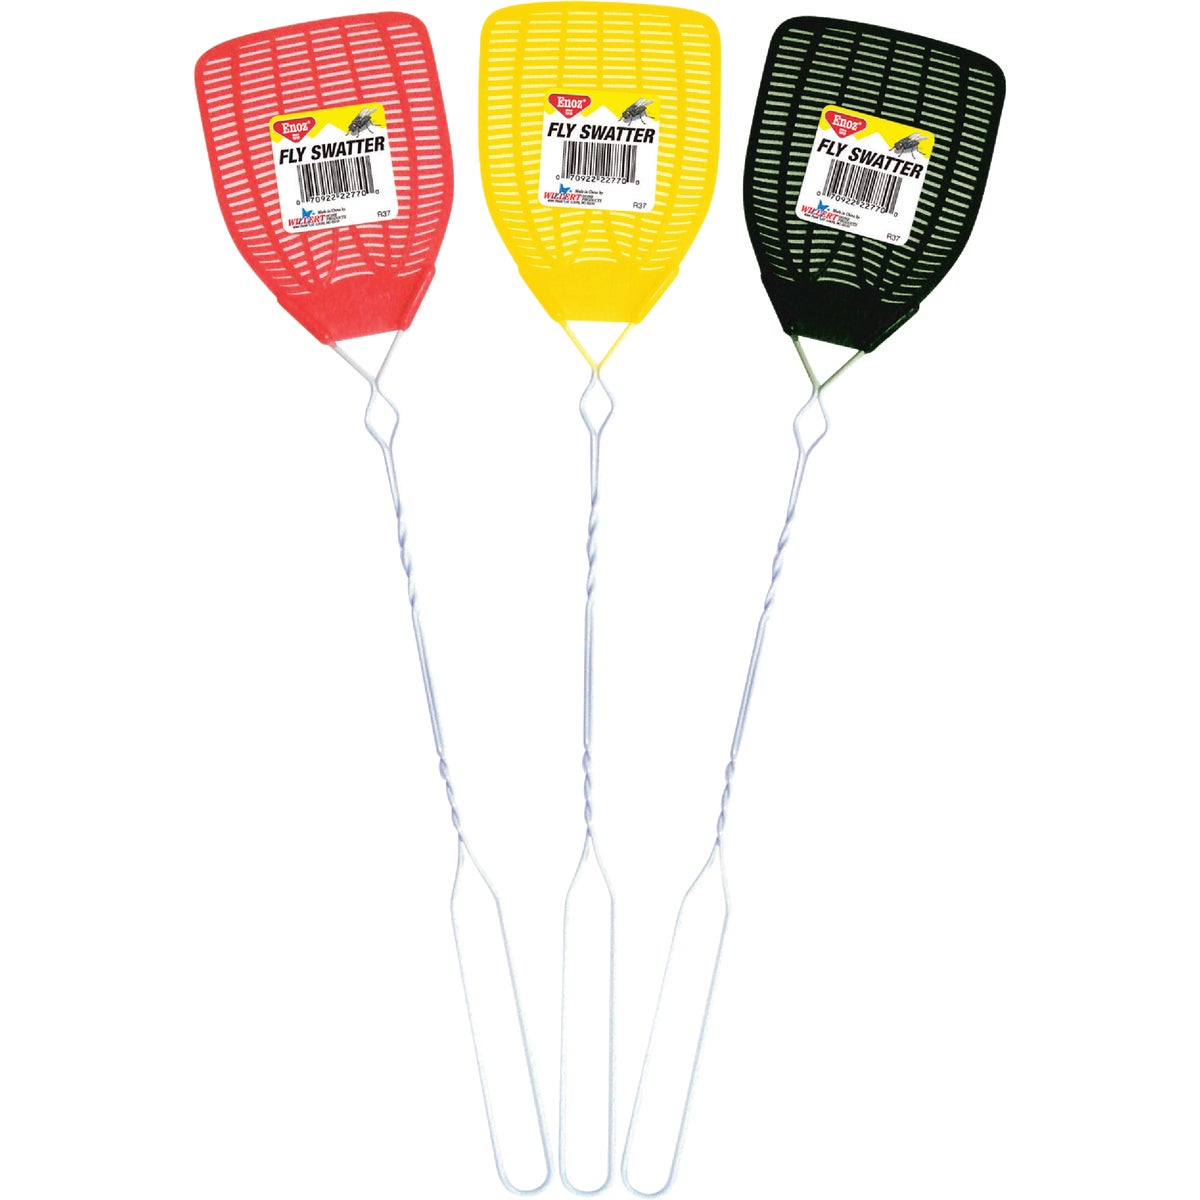 PLASTIC FLY SWATTER - R37.24 by Willert Home Prod